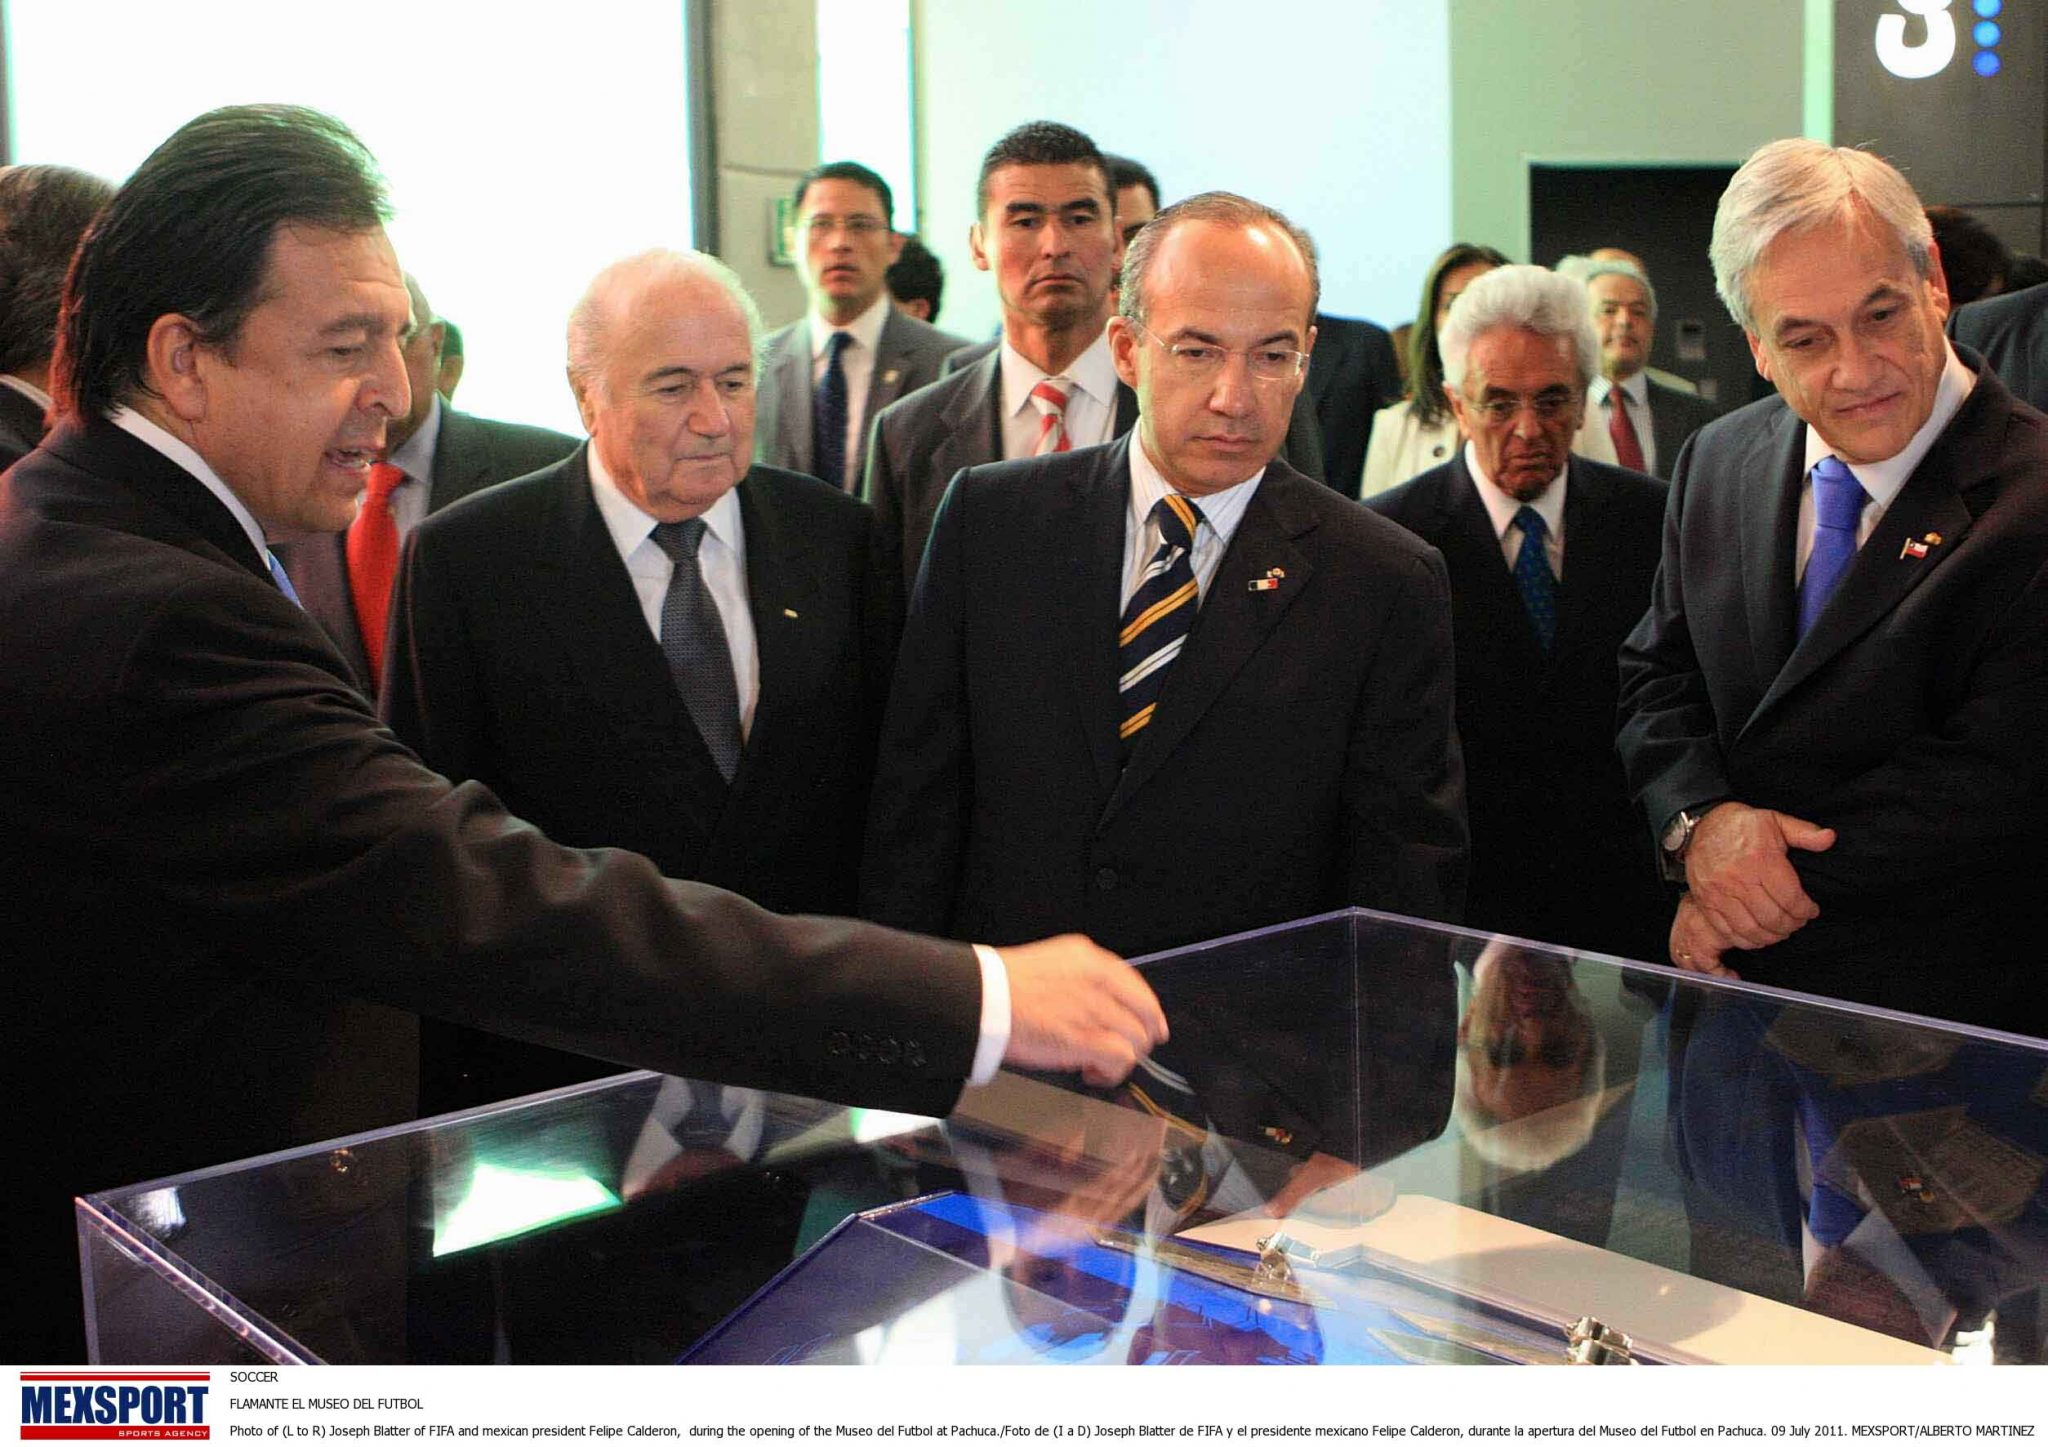 SOCCER  FLAMANTE EL MUSEO DEL FUTBOL  Photo of (L to R) Joseph Blatter of FIFA and mexican president Felipe Calderon,  during the opening of the Museo del Futbol at Pachuca./Foto de (I a D) Joseph Blatter de FIFA y el presidente mexicano Felipe Calderon, durante la apertura del Museo del Futbol en Pachuca. 09 July 2011. MEXSPORT/ALBERTO MARTINEZ